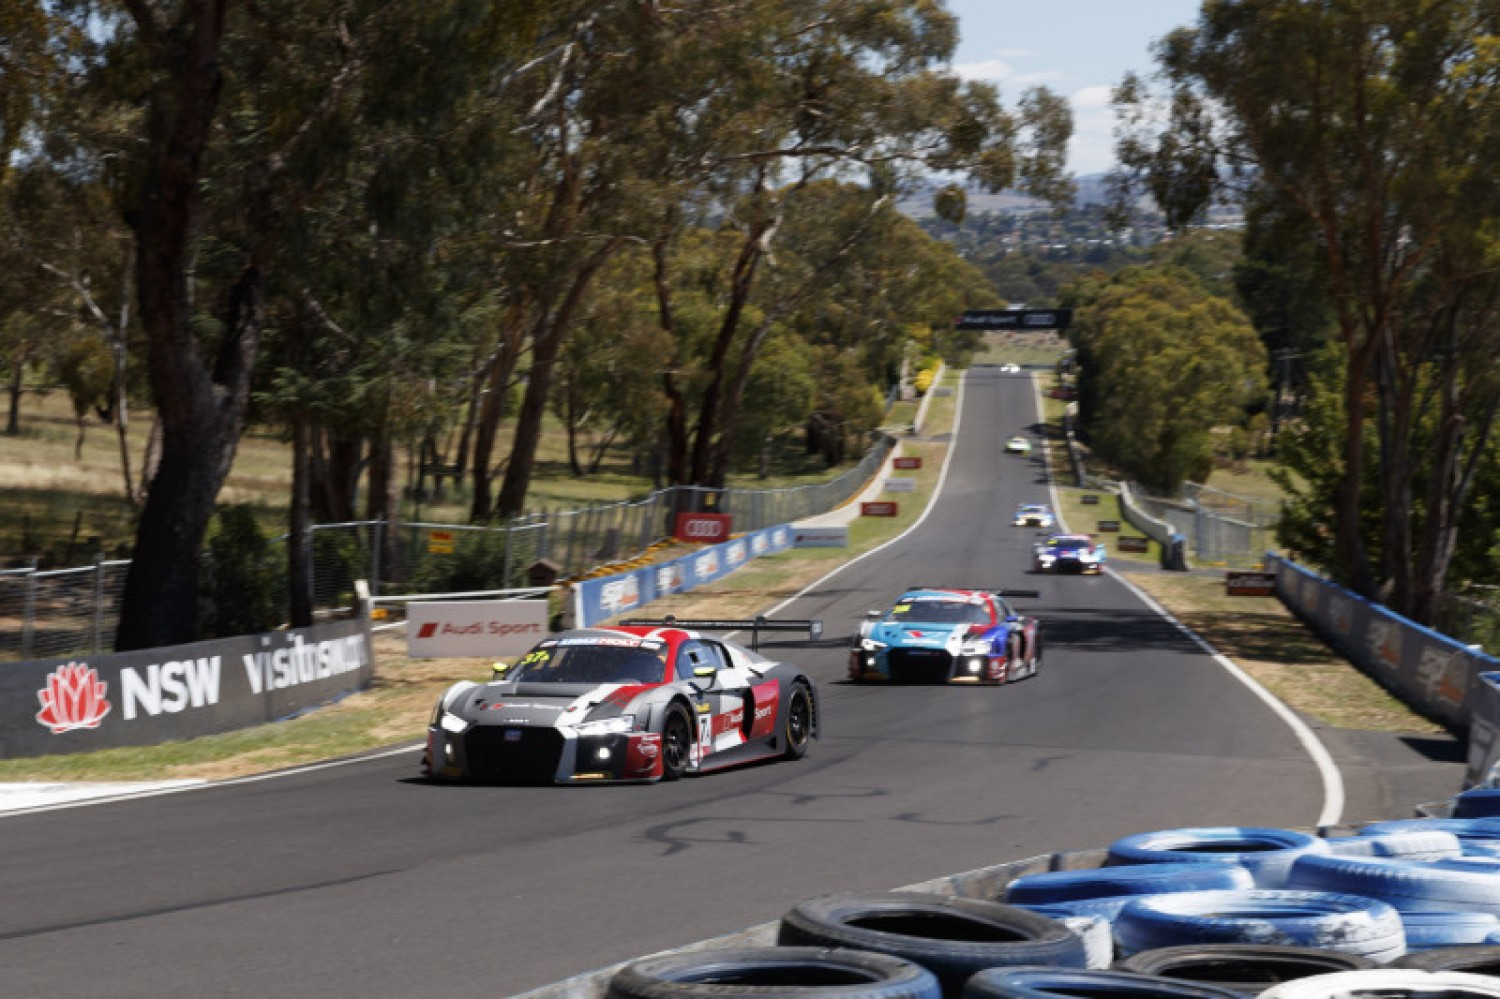 Blancpain GT Series favourites confirmed among stellar Liqui-Moly Bathurst 12 Hour grid